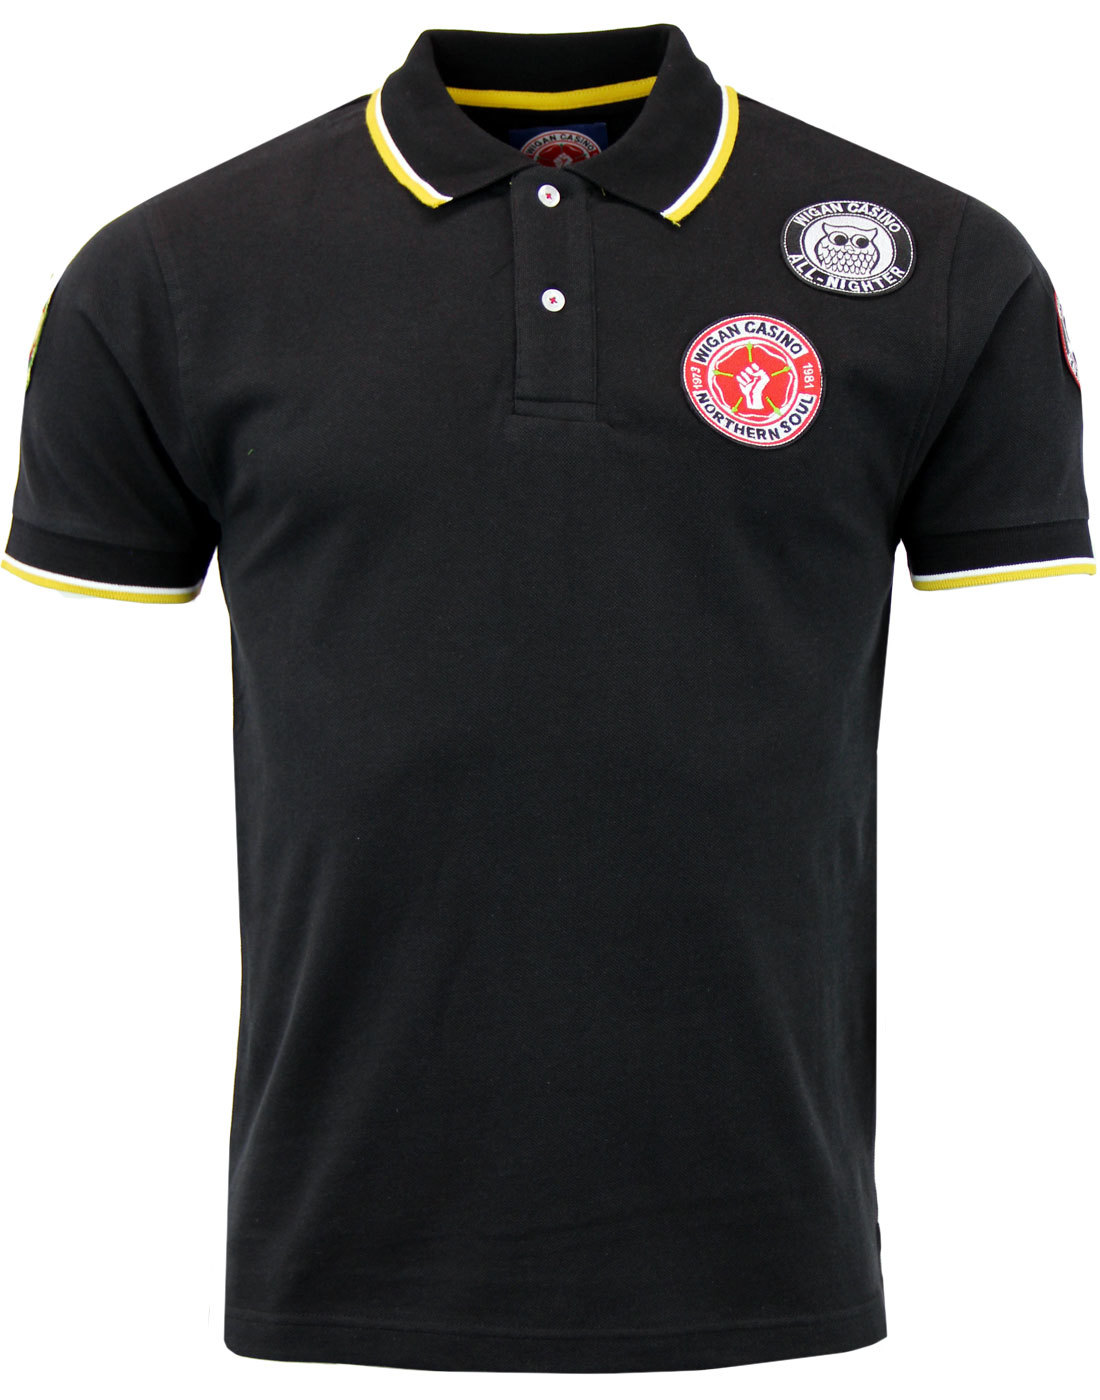 WIGAN CASINO Northern Soul Mod Multi Badged Polo B